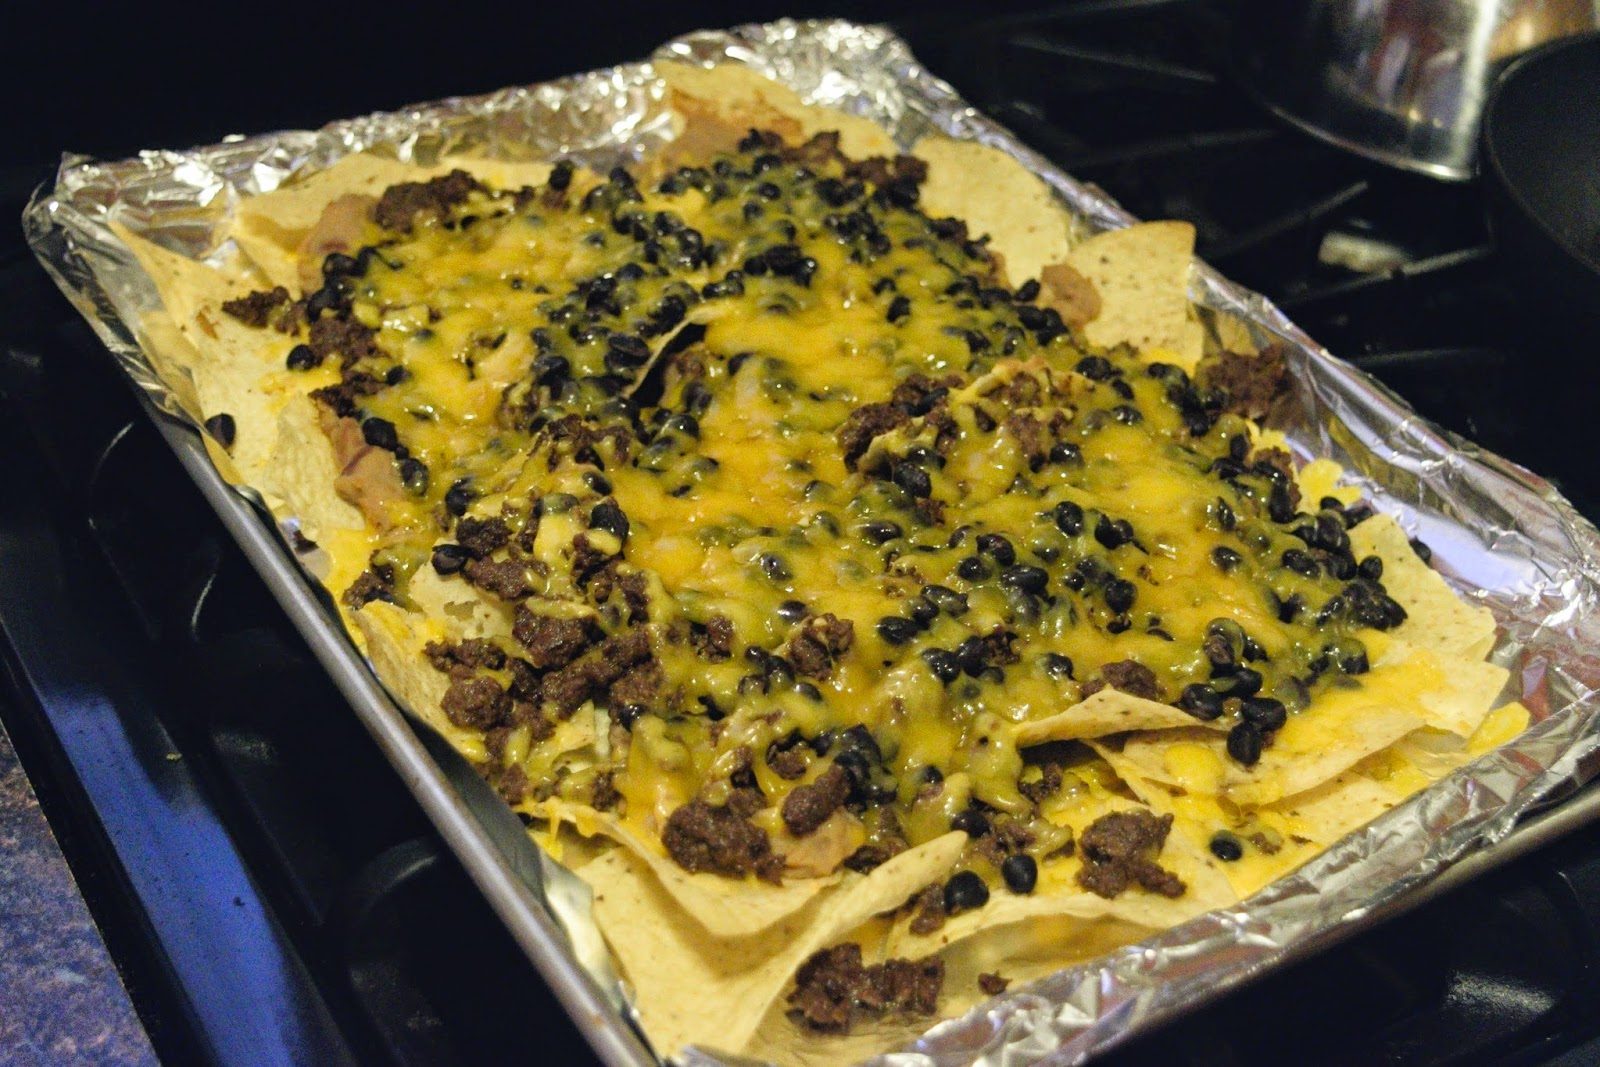 The Nachos Supreme out of the oven .